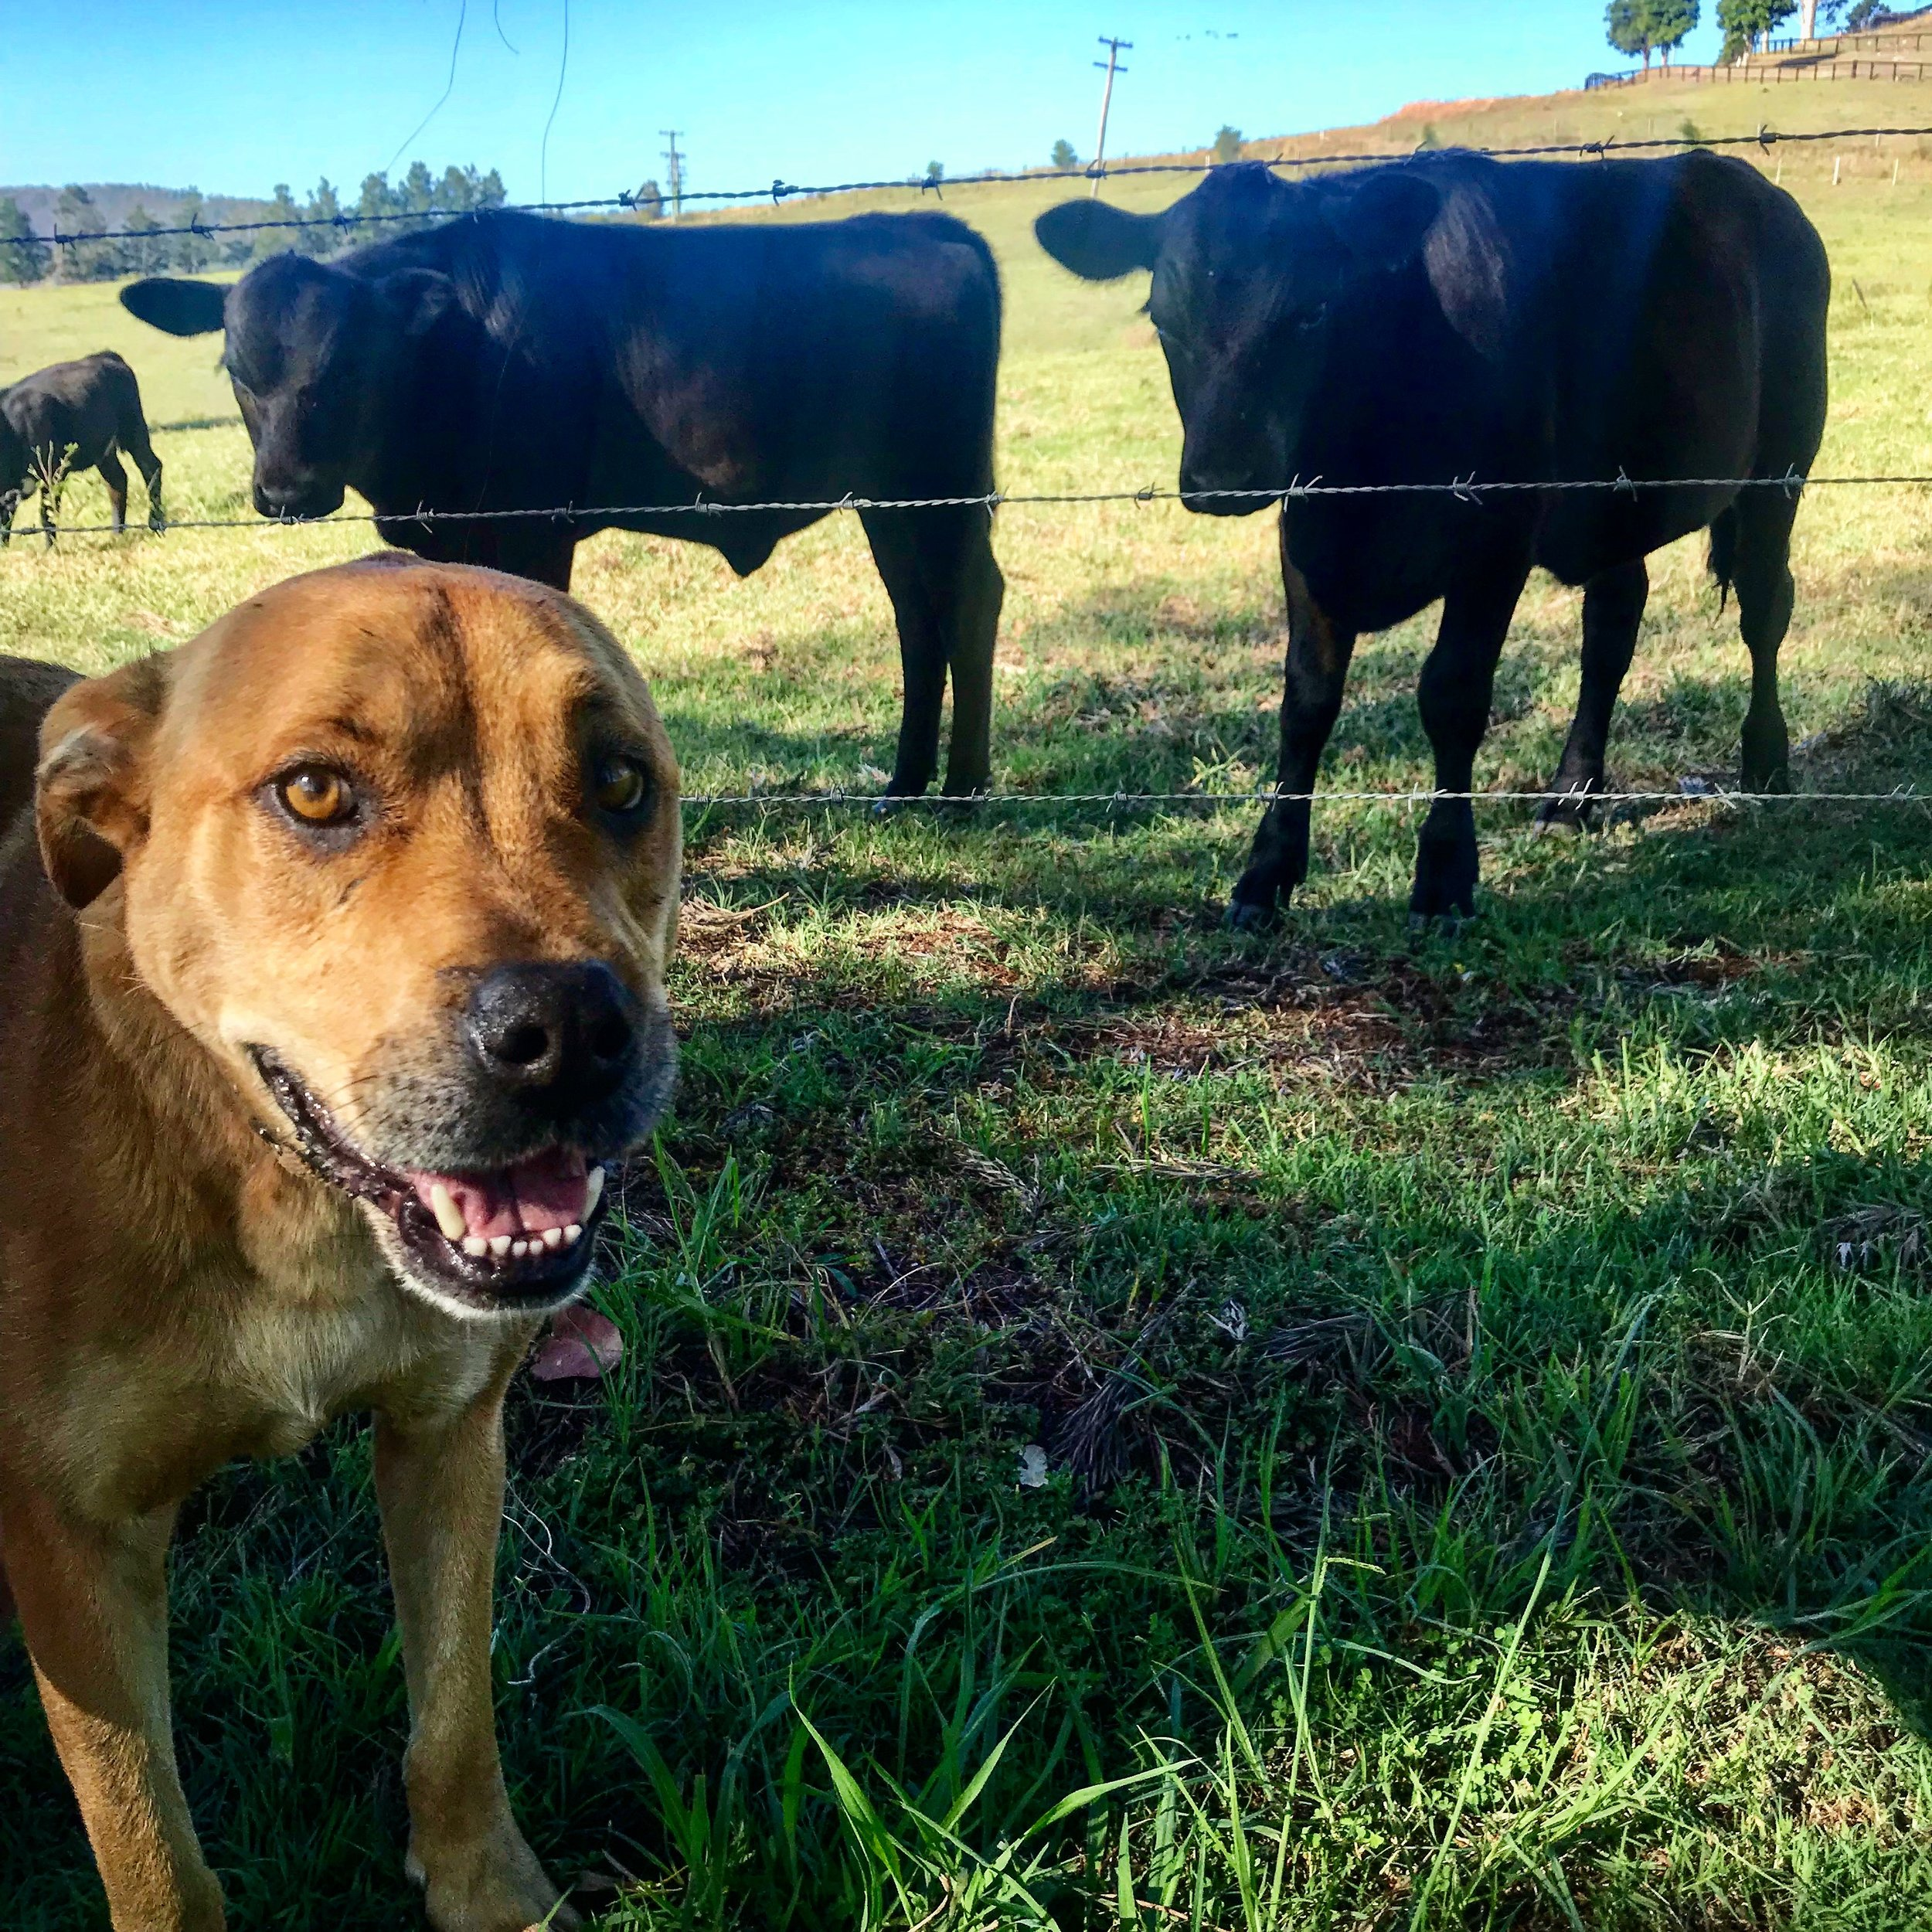 Sitting for T Bone the dog, 28 horses and 12 cattle on a 60 acre farm in the Hunter Valley, Australia in December 2018 for 2 weeks -